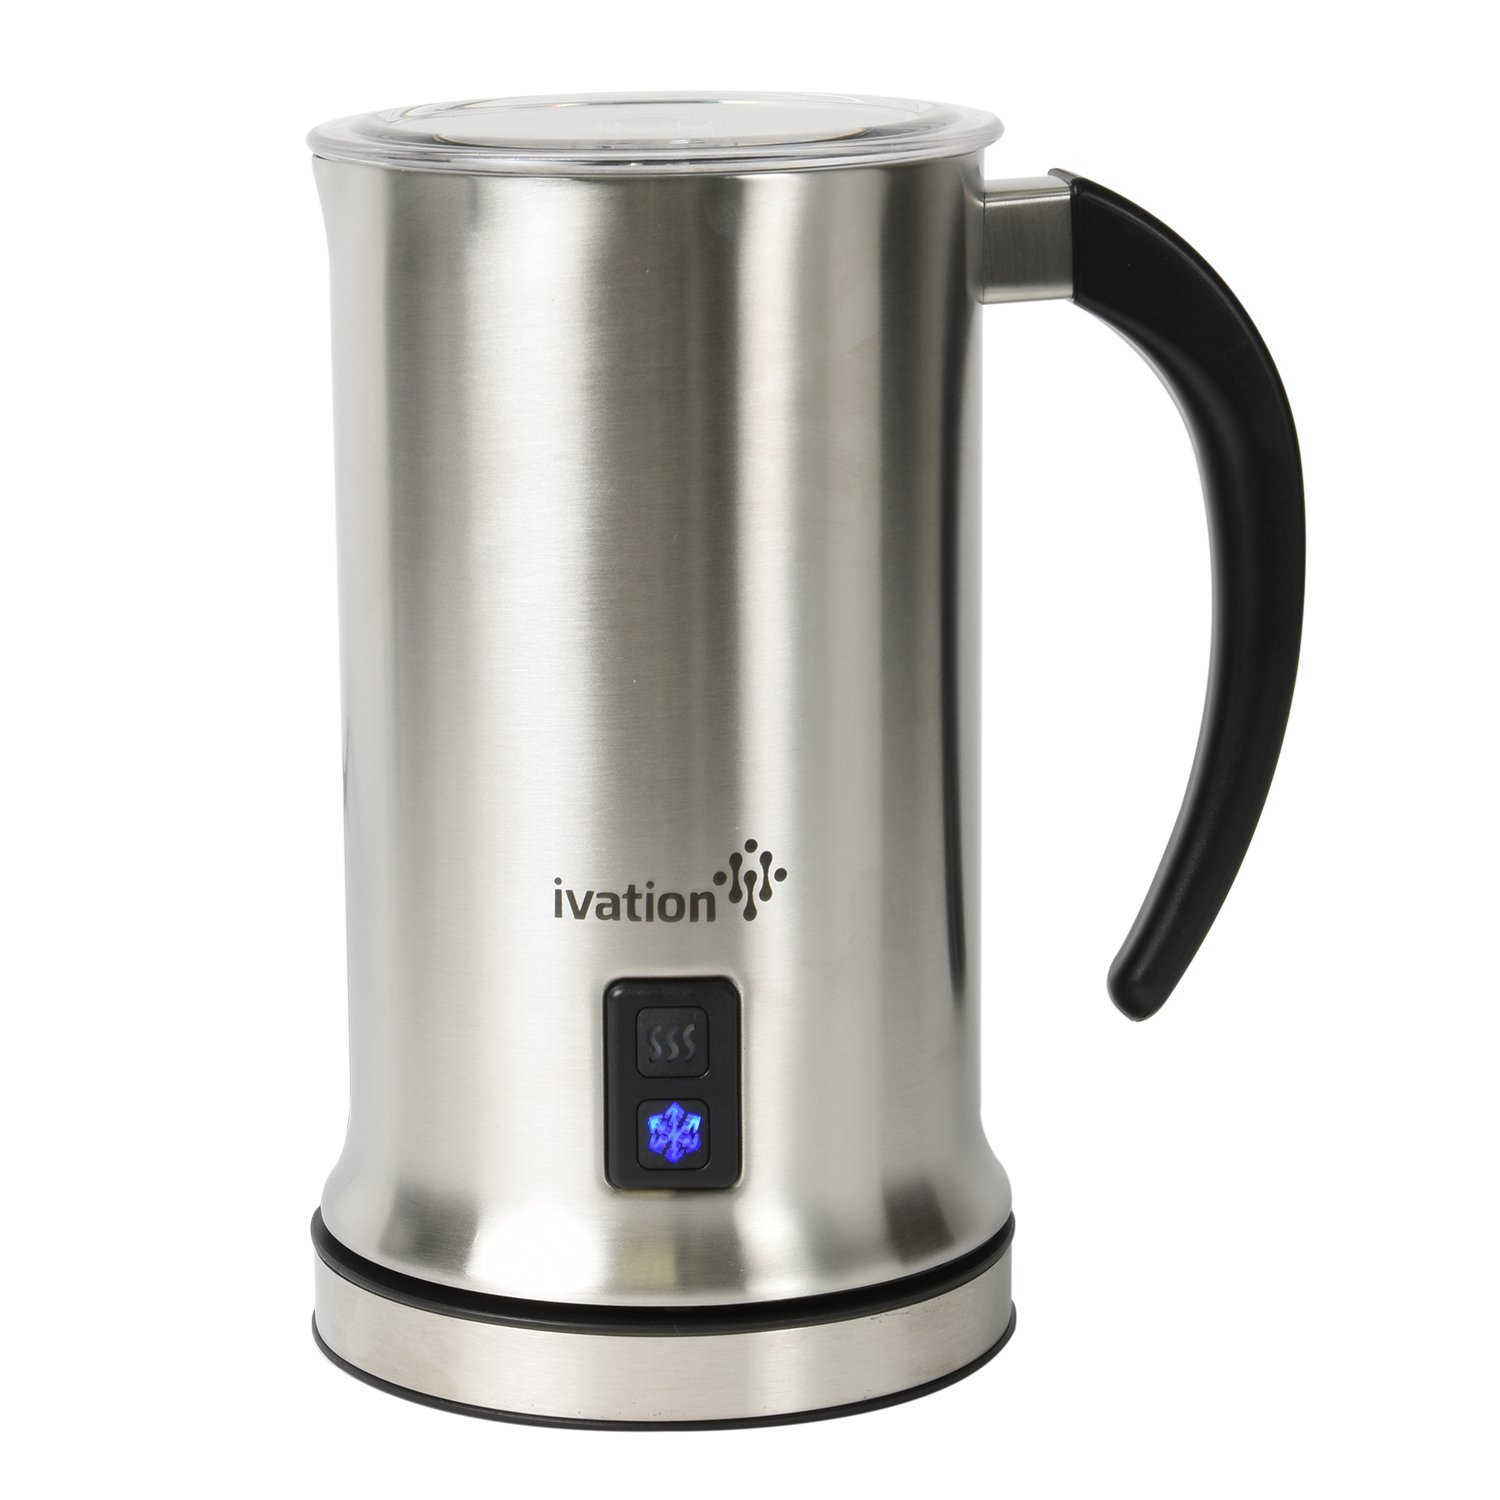 Ivation Cordless Automatic Electric Milk Frother & Warmer